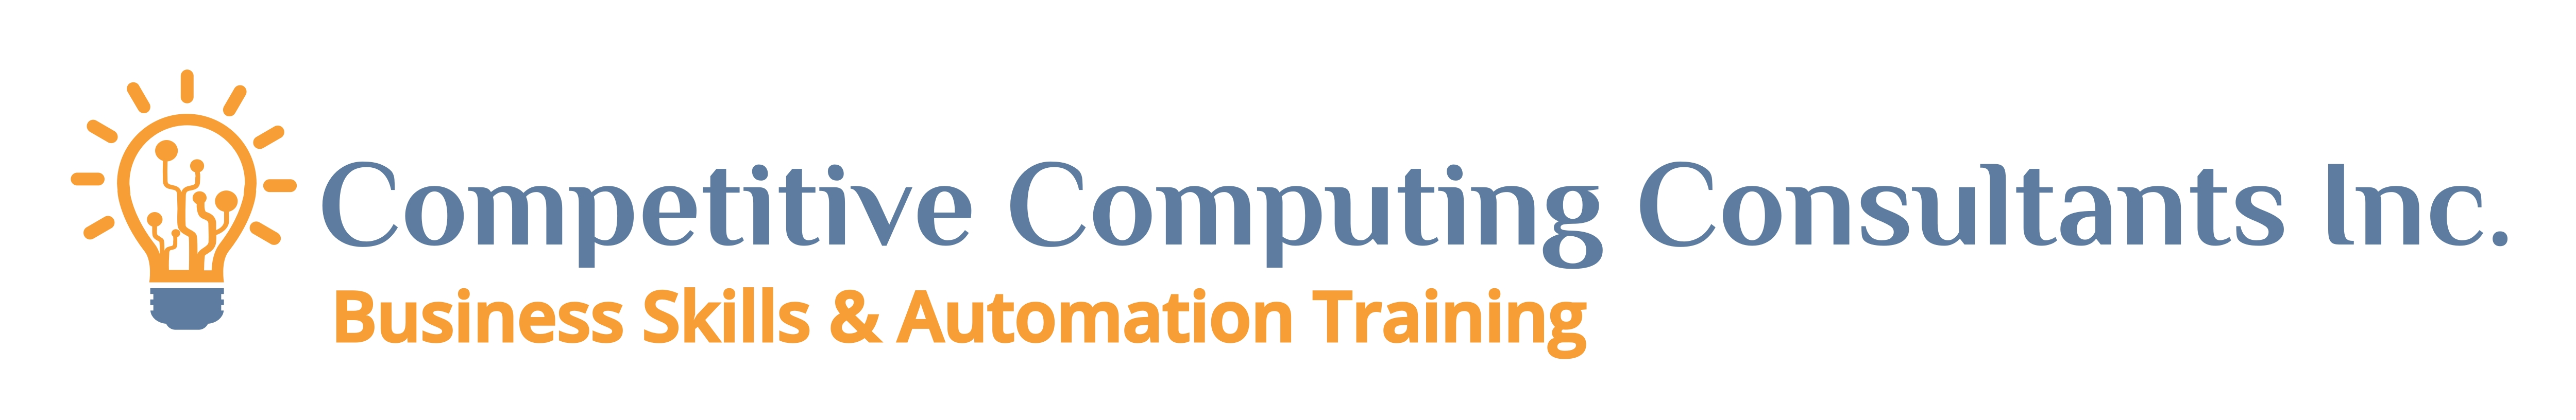 Competitive Computing Consultants Inc.